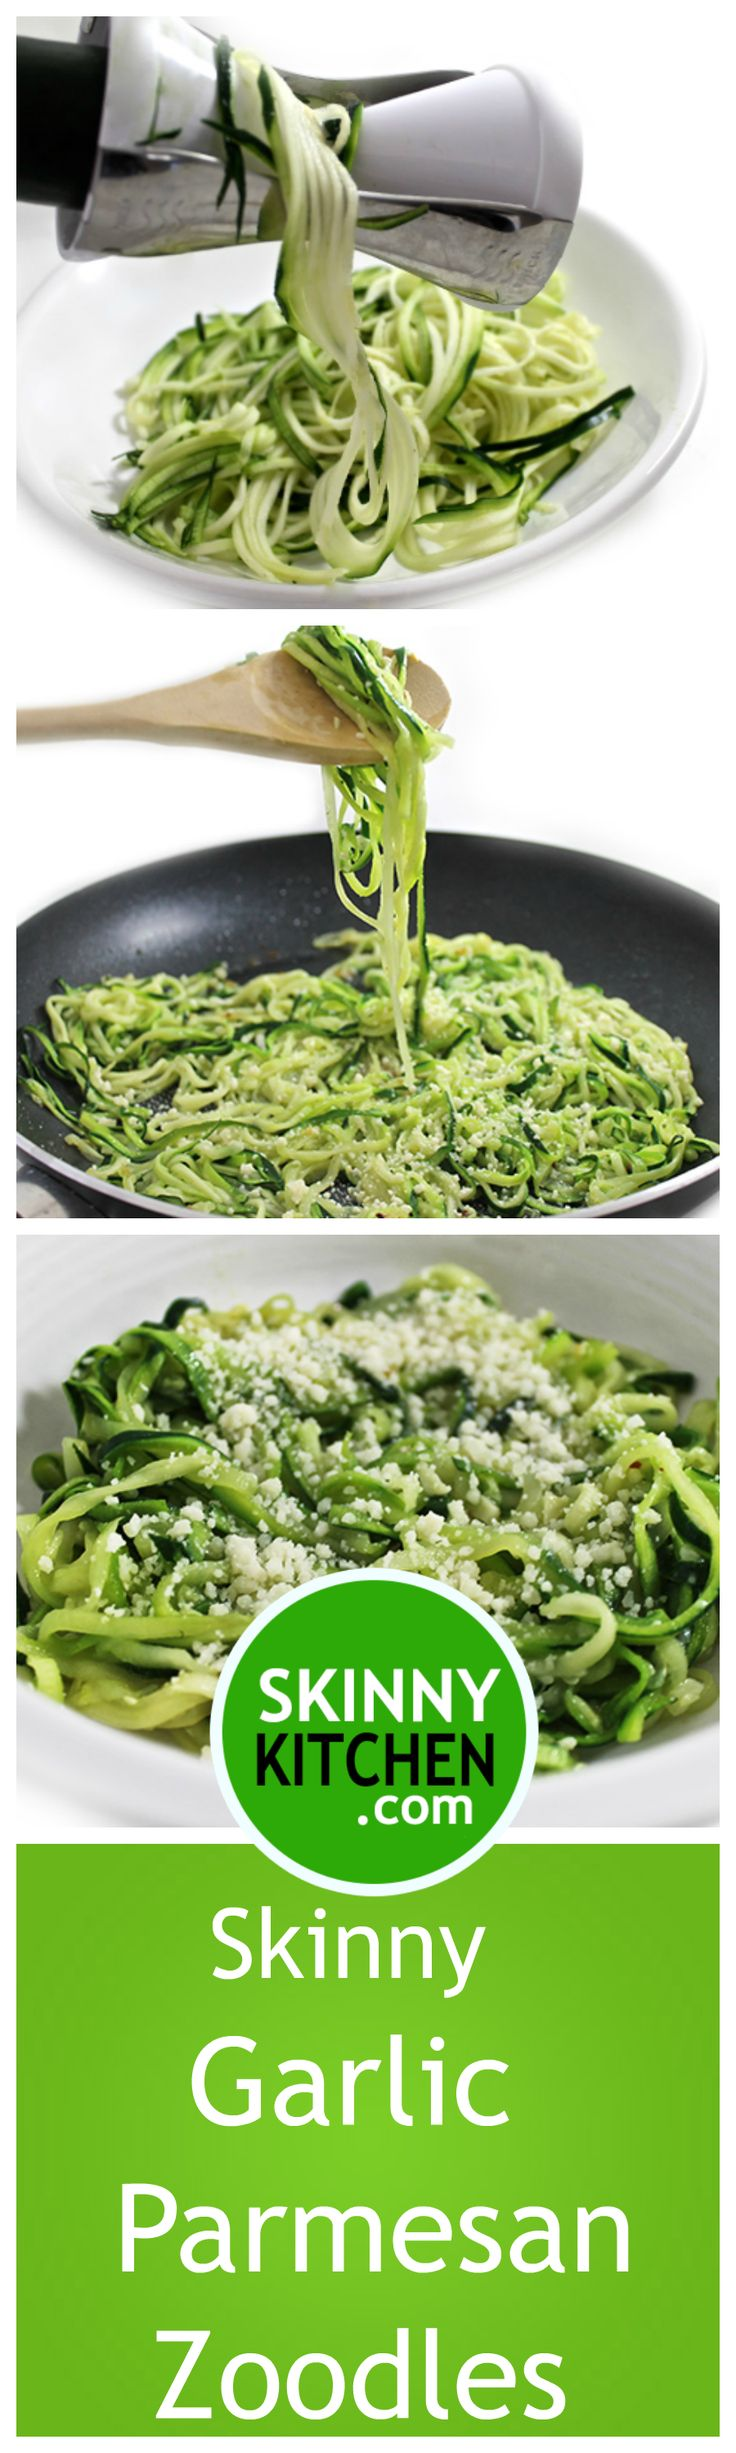 (NEW) Skinny Garlic Parmesan Zoodles . It's sooo dreamy good. Makes a wonderful side dish to chicken, beef, pork or fish and works wonders topped with pasta sauce. Each serving has 135 calories, 8g fat & 3 Weight Watchers SmartPoints. http://www.skinnykitchen.com/recipes/skinny-garlic-parmesan-zoodles/